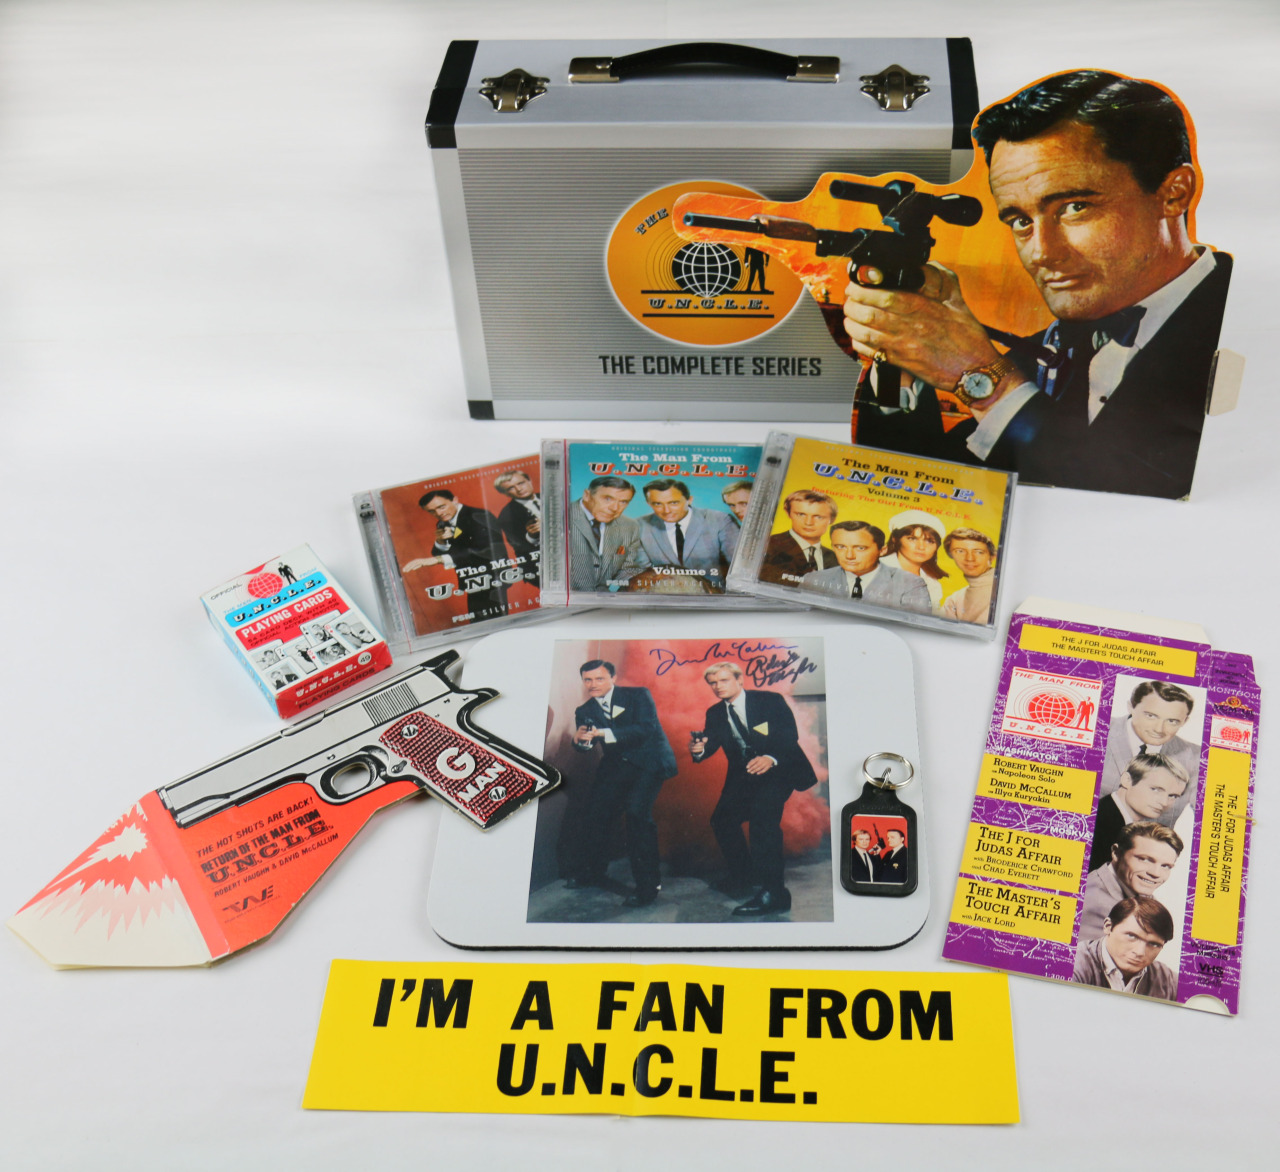 Memorabilia from the Man From U.N.C.L.E. tv show